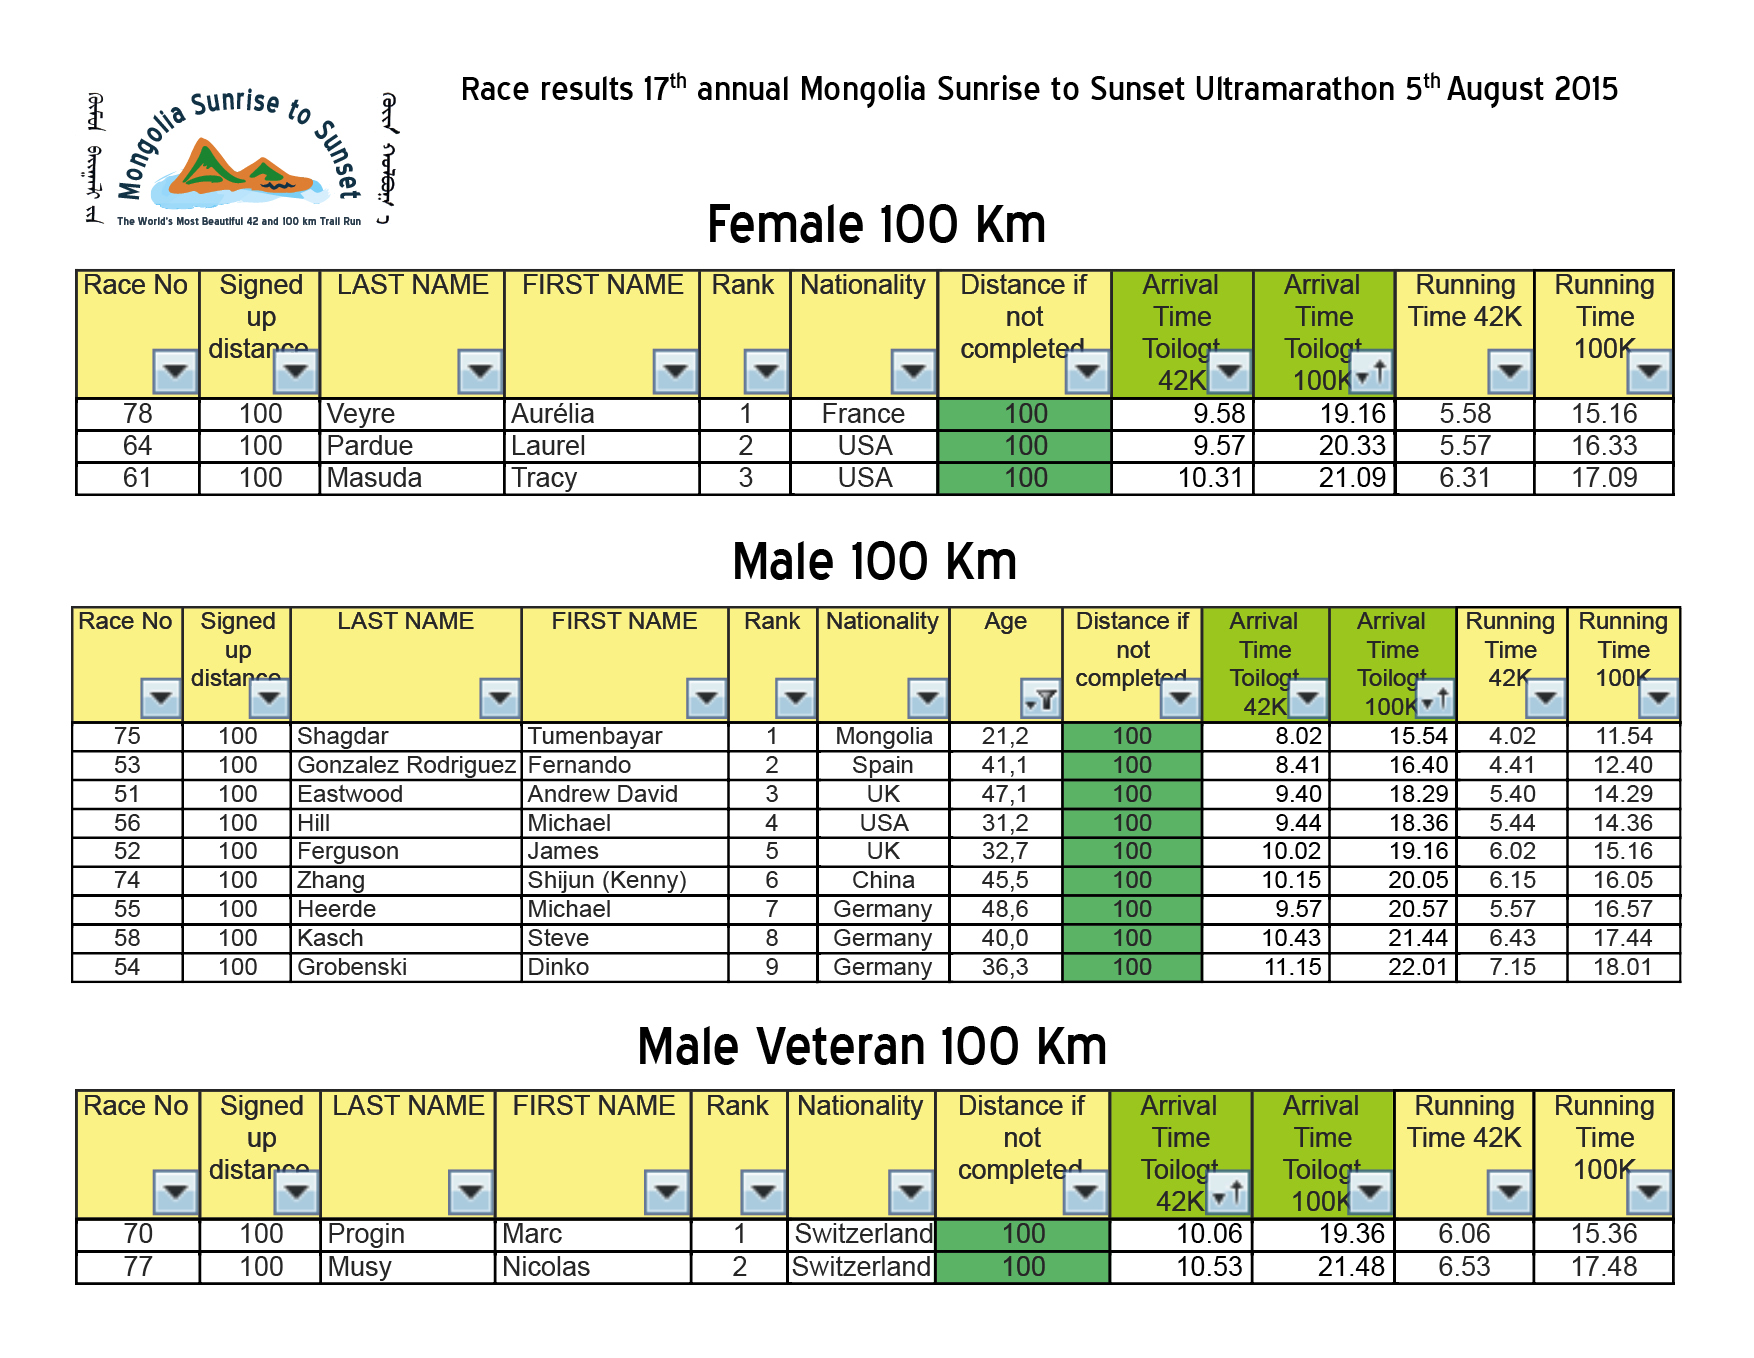 Race results 17th annual Mongolia Sunrise to Sunset 2015 Ultramarathon3